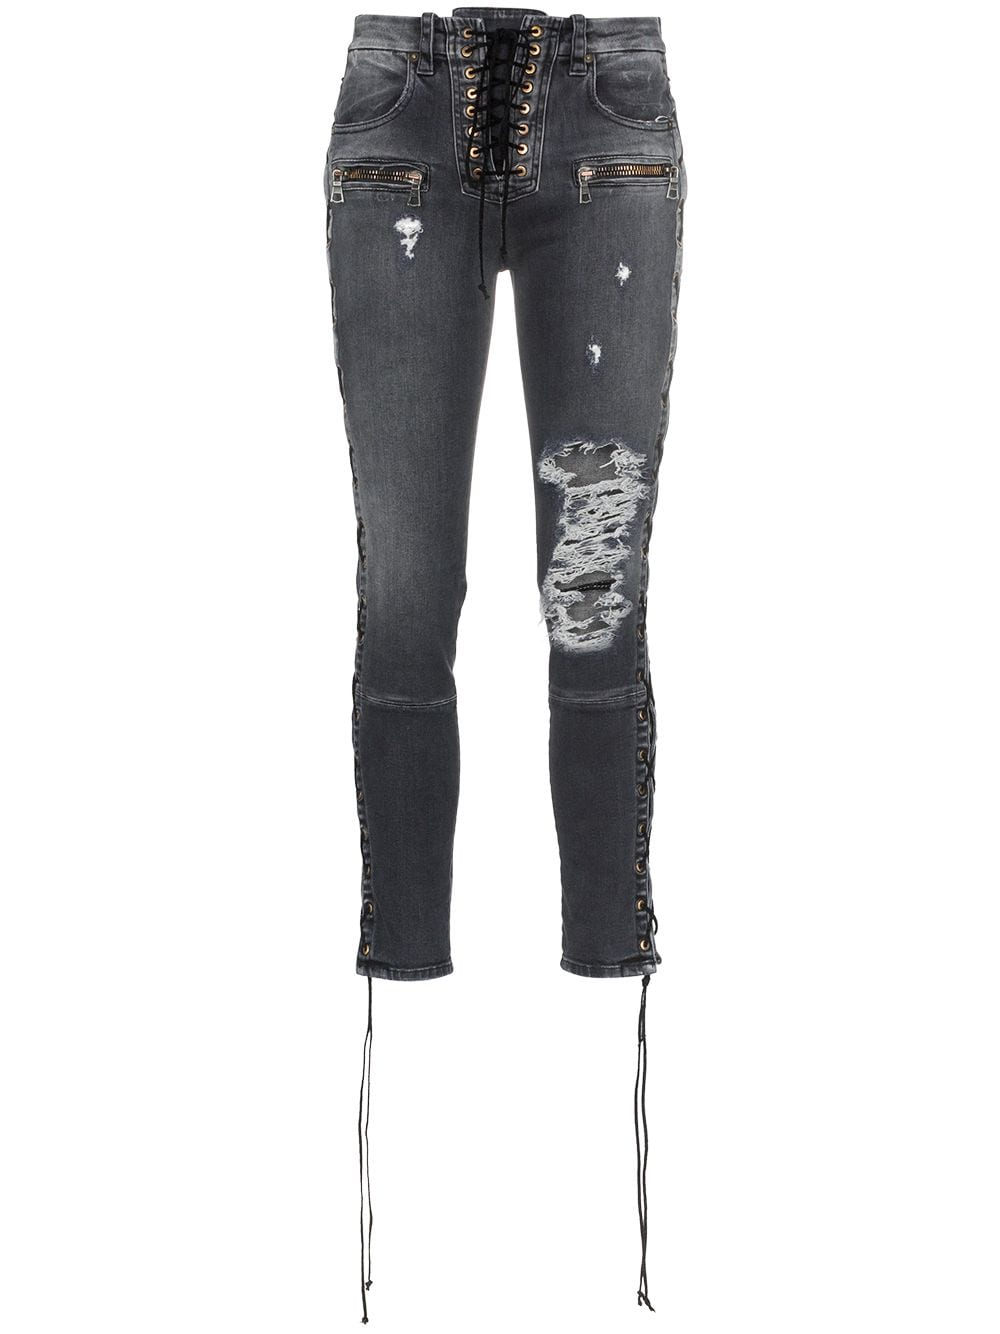 UNRAVEL PROJECT Skinny stonewash ripped skinny jeans - Grey von UNRAVEL PROJECT